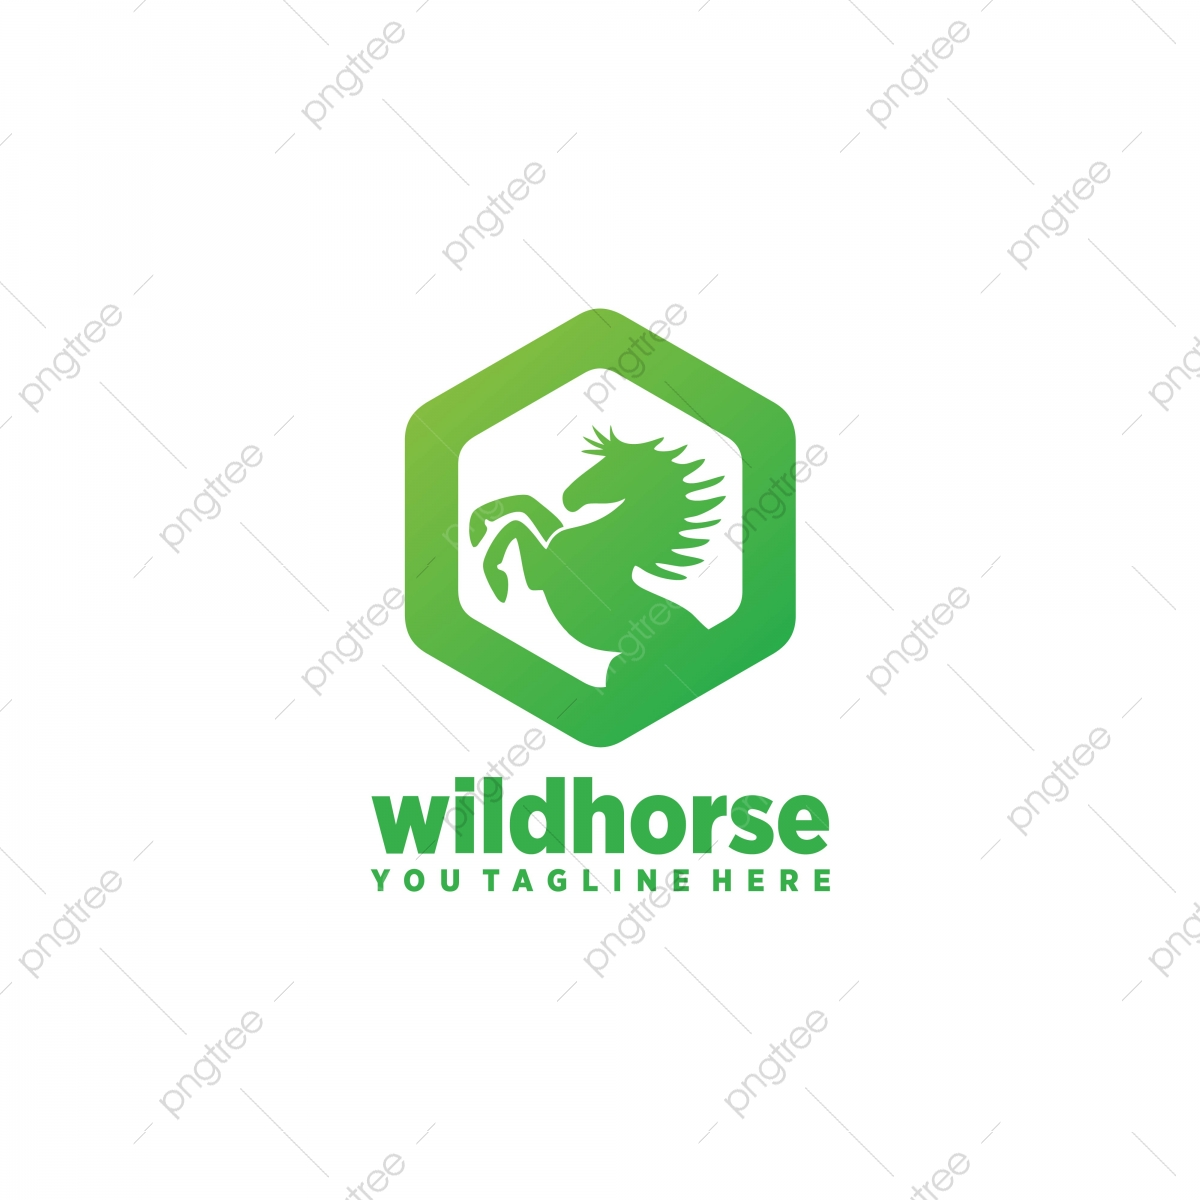 Wildhorse Wild Horse Logo Design Templates Template For Free Download On Pngtree